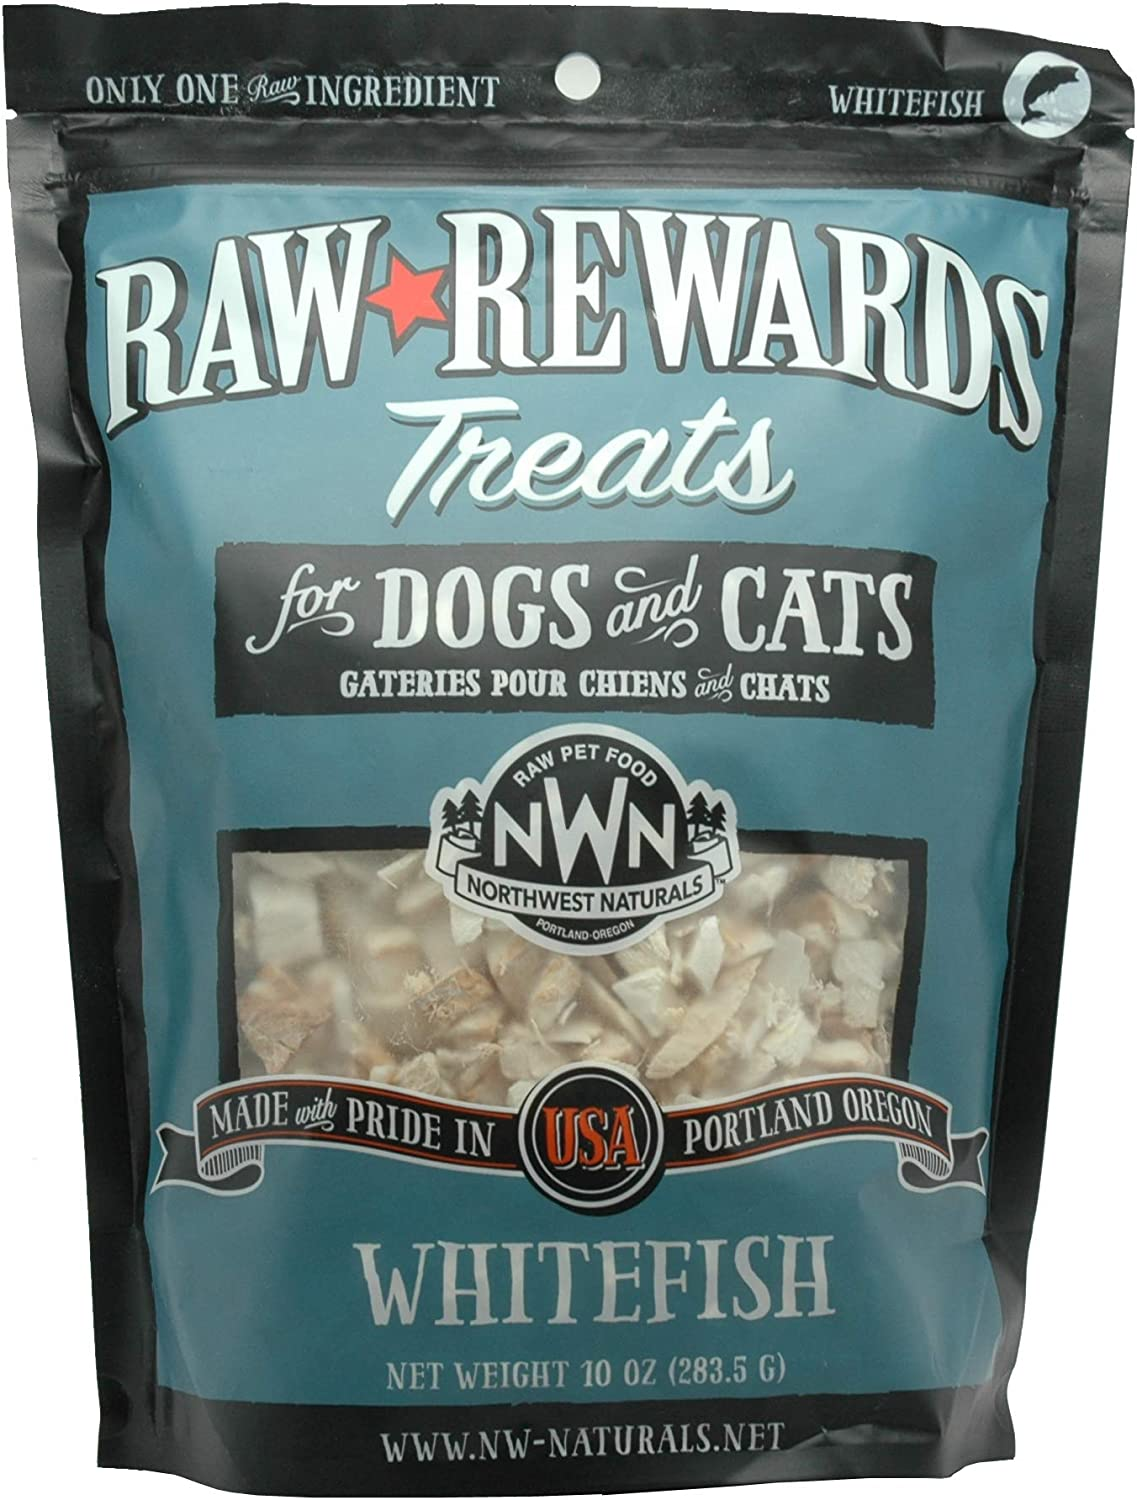 Northwest Naturals Raw Rewards Freeze-Dried Treats for Dogs and Cats – Whitefish – Gluten-Free Pet Food, Cat Snacks, Dog Snacks – 10 Oz.